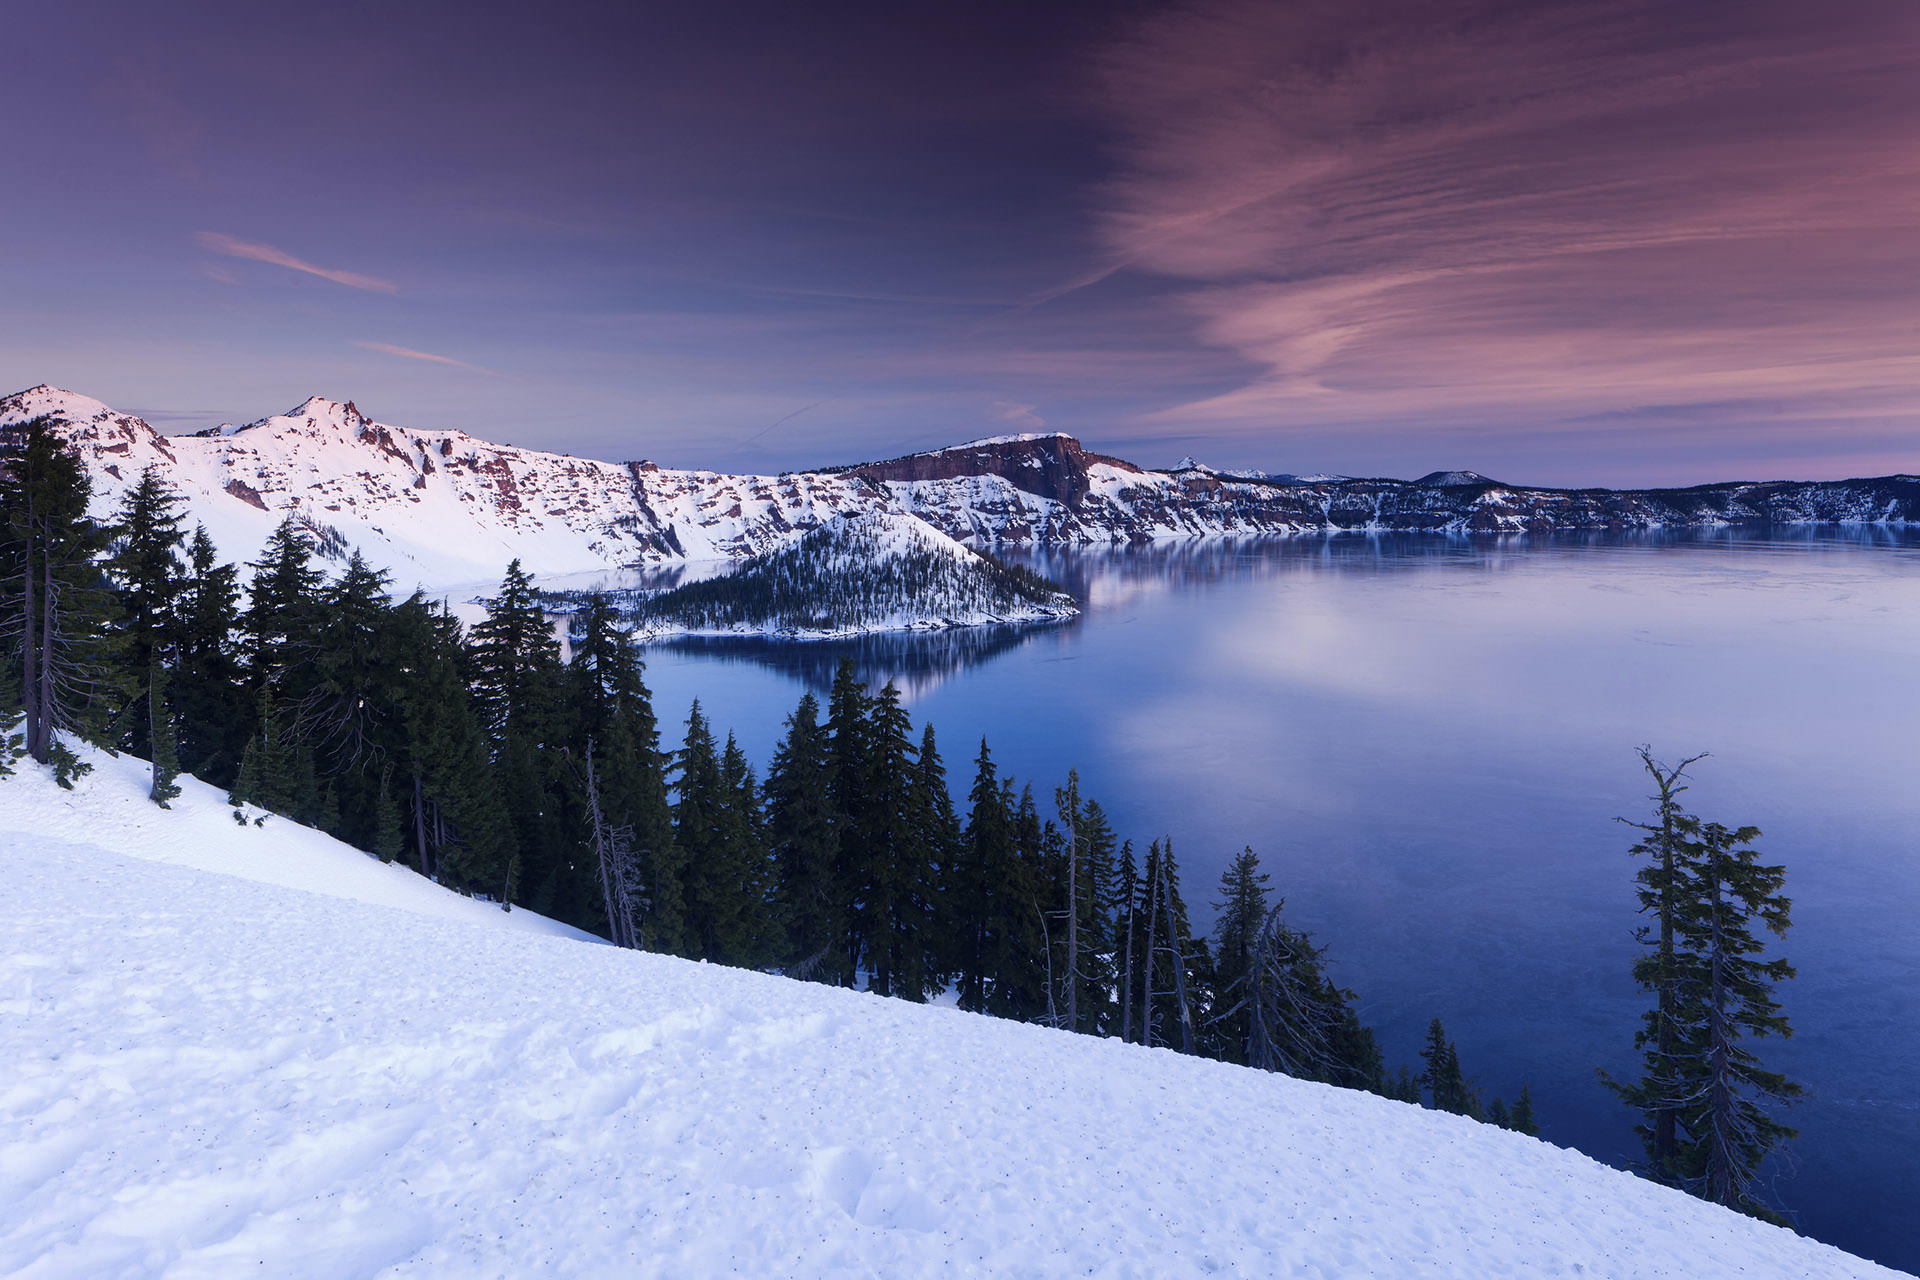 Snow capped mountains surround Crater Lake